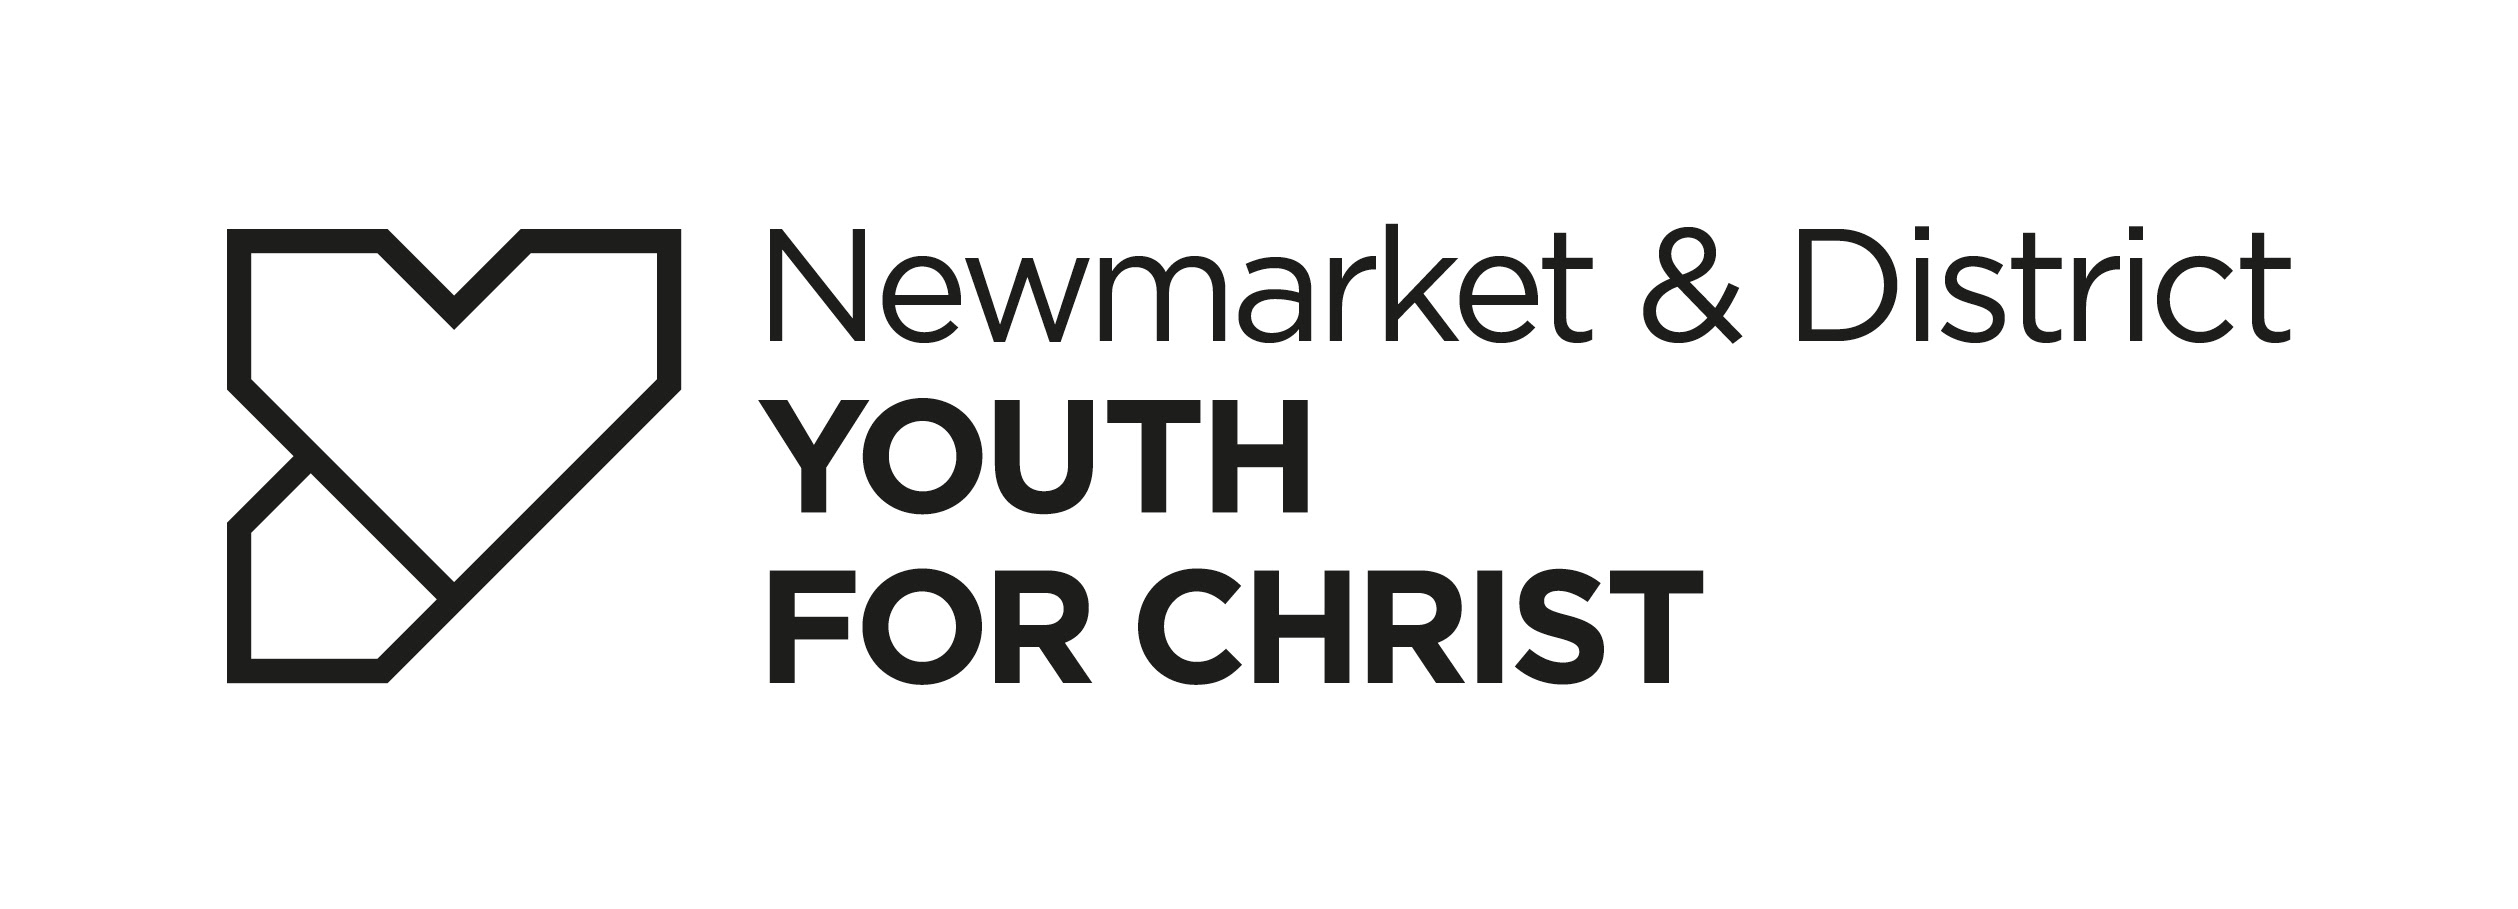 Newmarket Youth For Christ